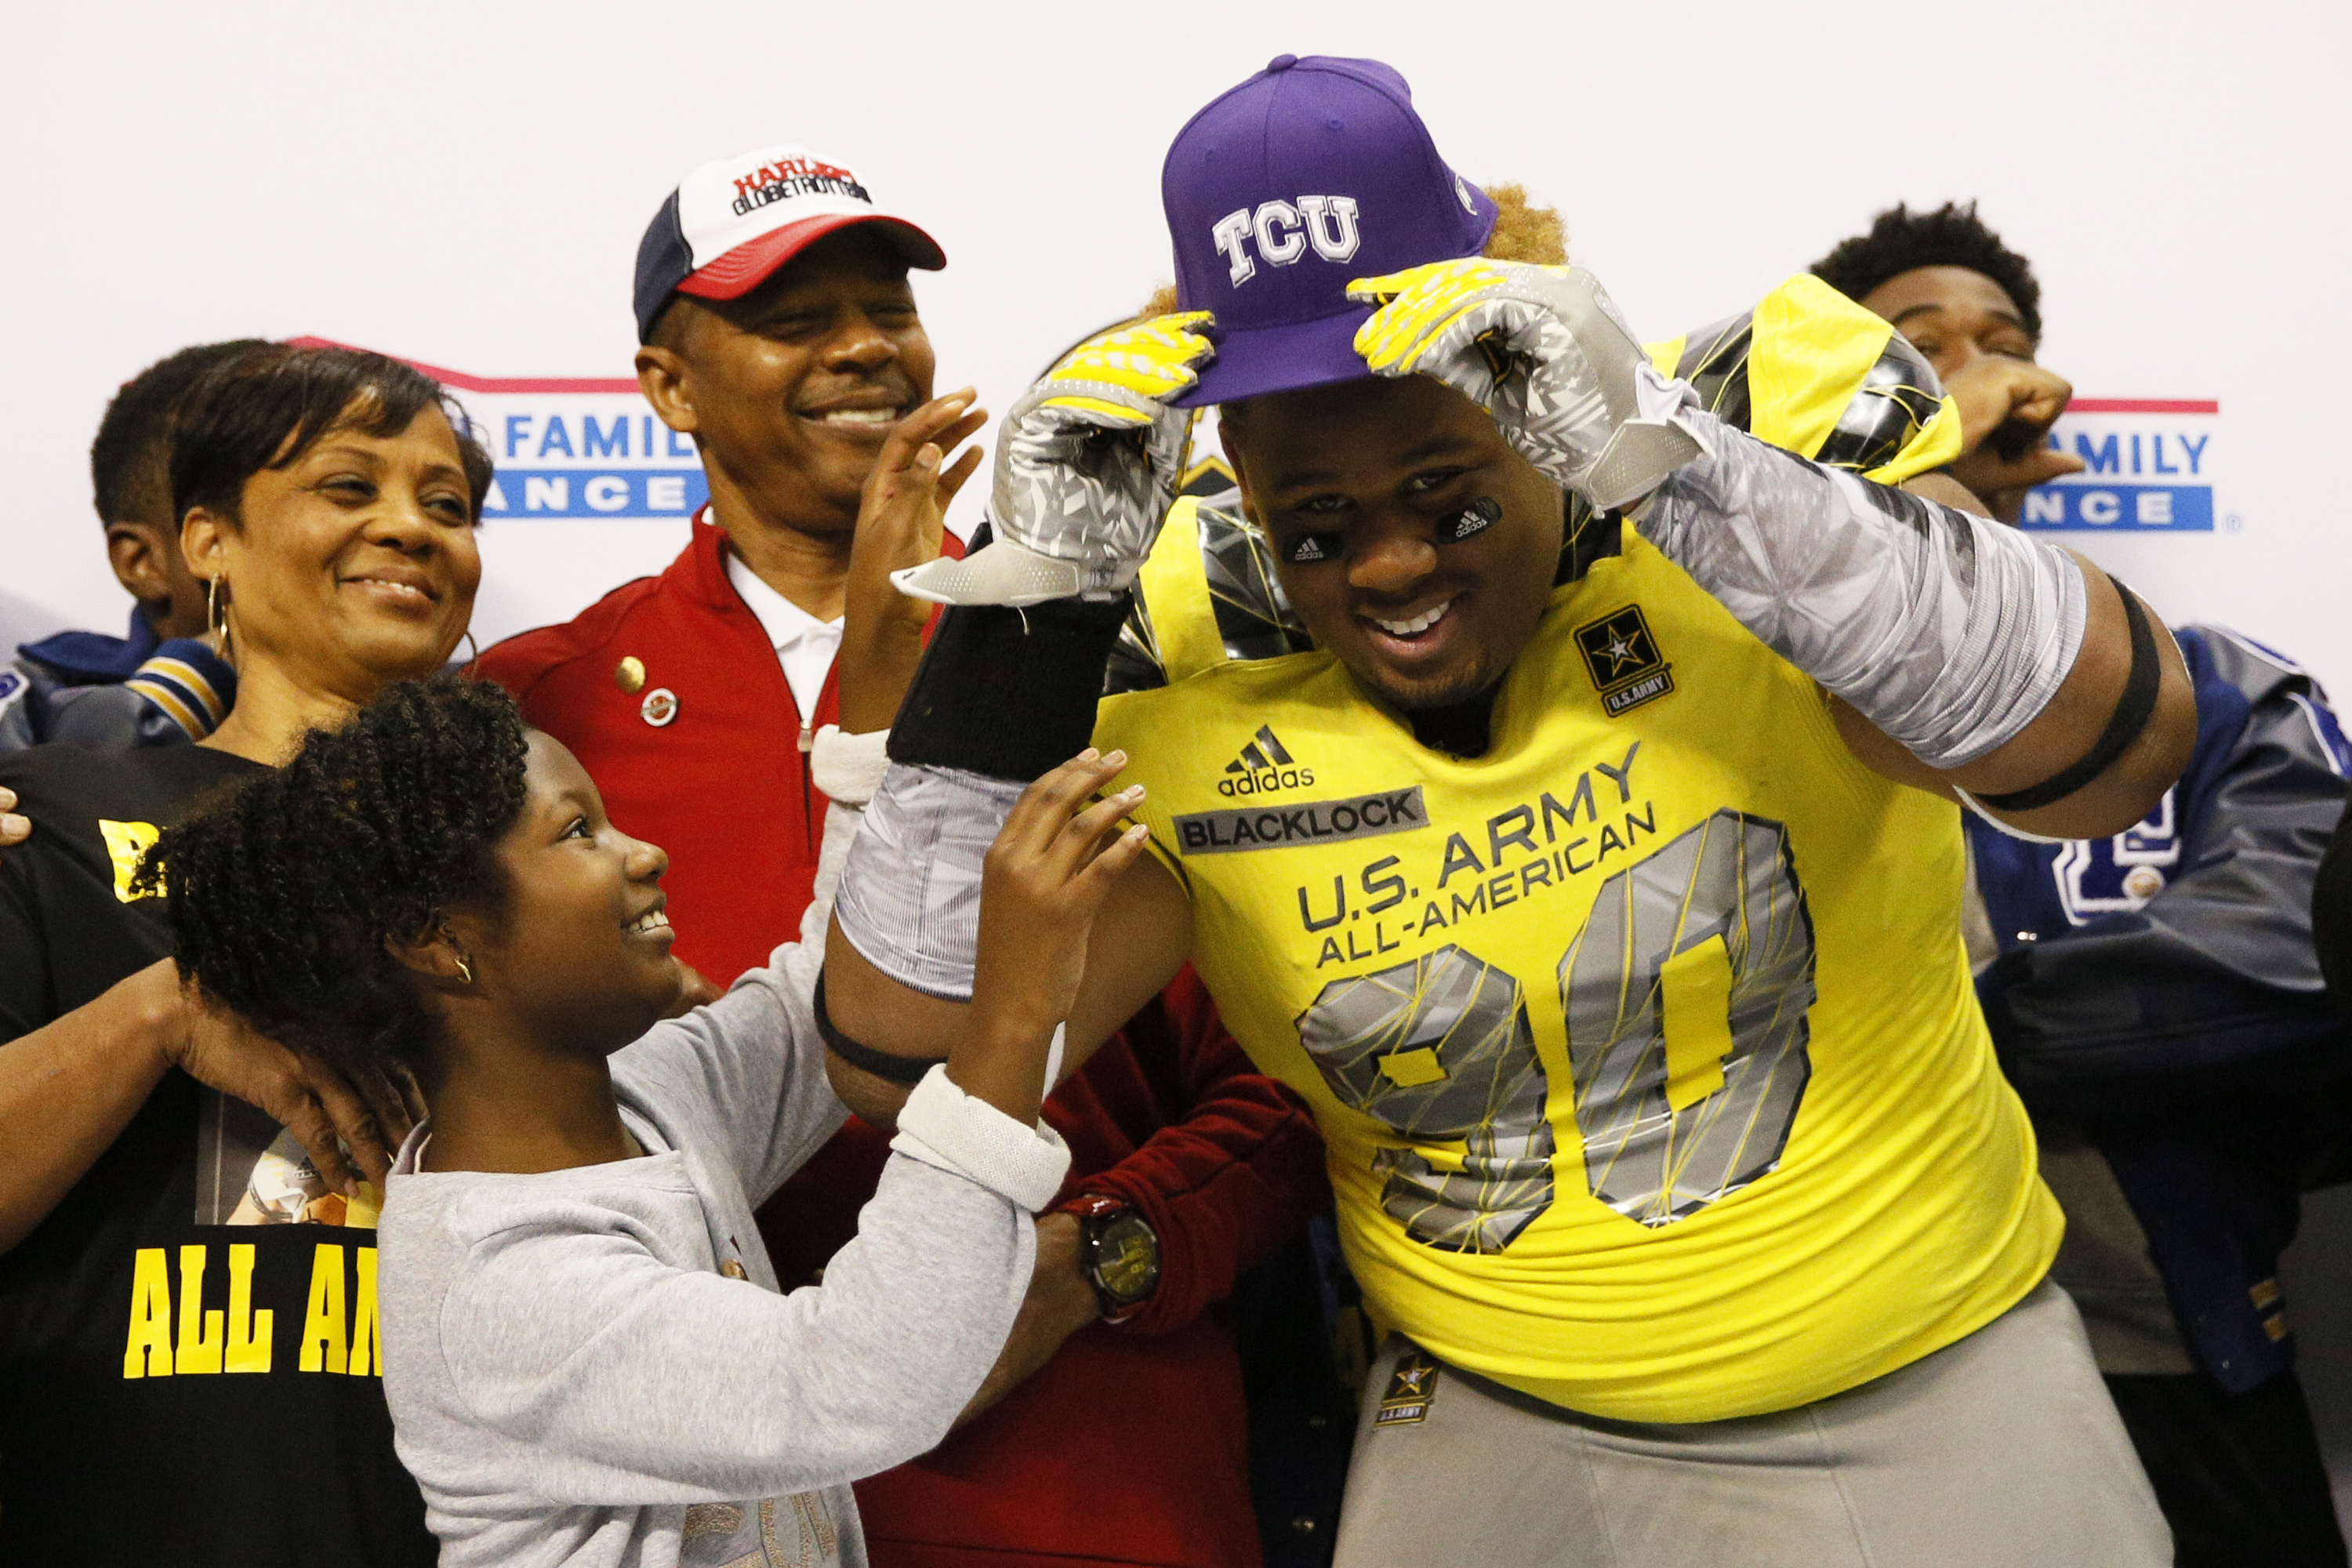 West defensive lineman Ross Blacklock (90) shows off his Texas Christian University hat after committing  (Photo: Soobum Im, USA TODAY Sports)